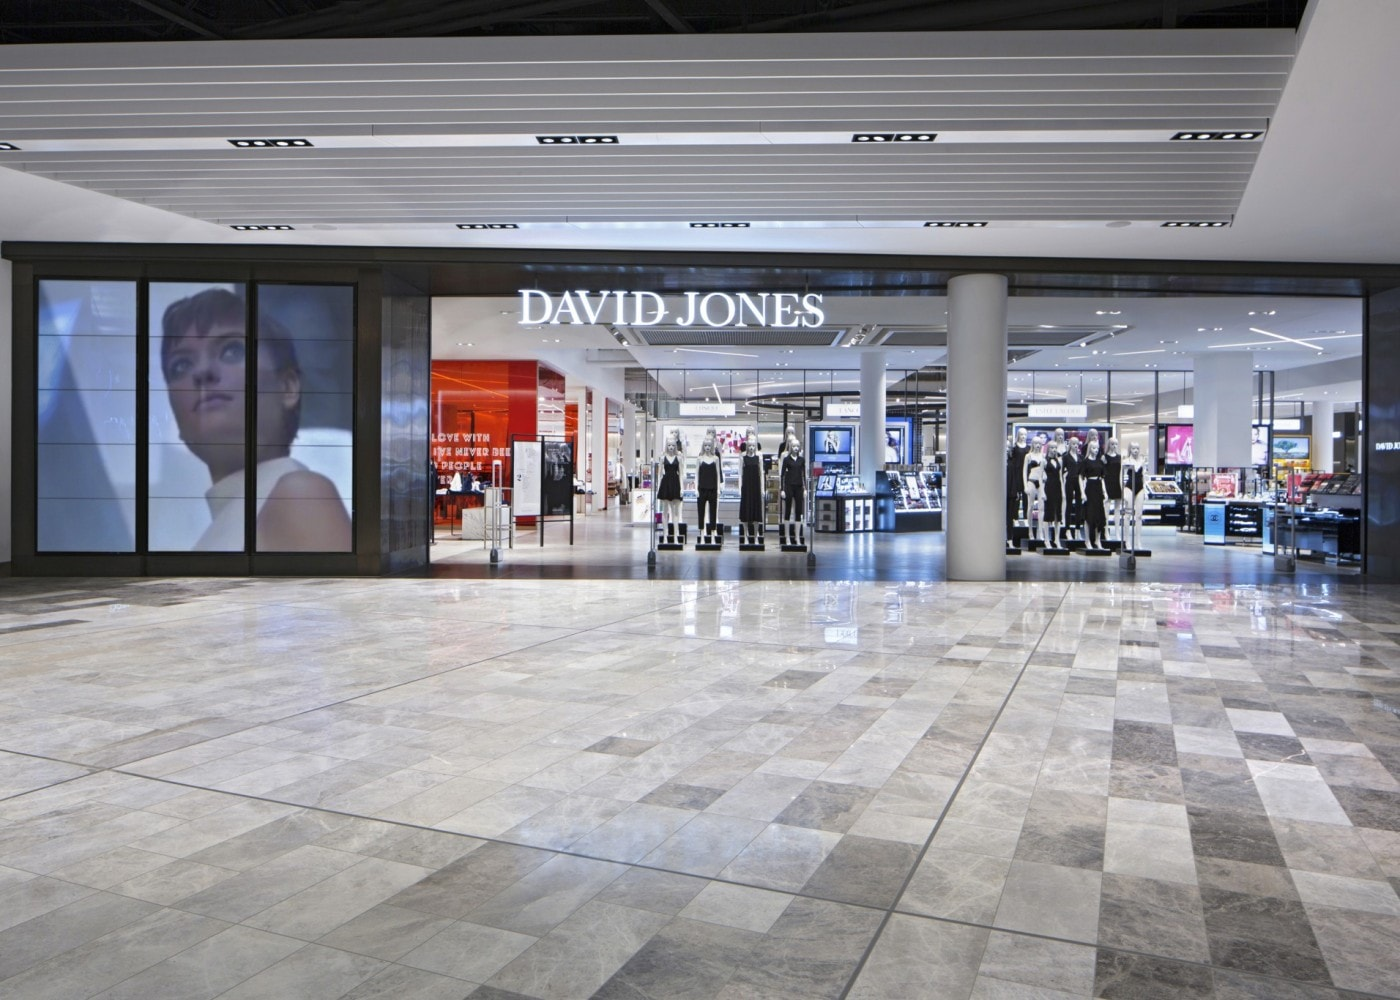 retail lighting design: David Jones shop exterior